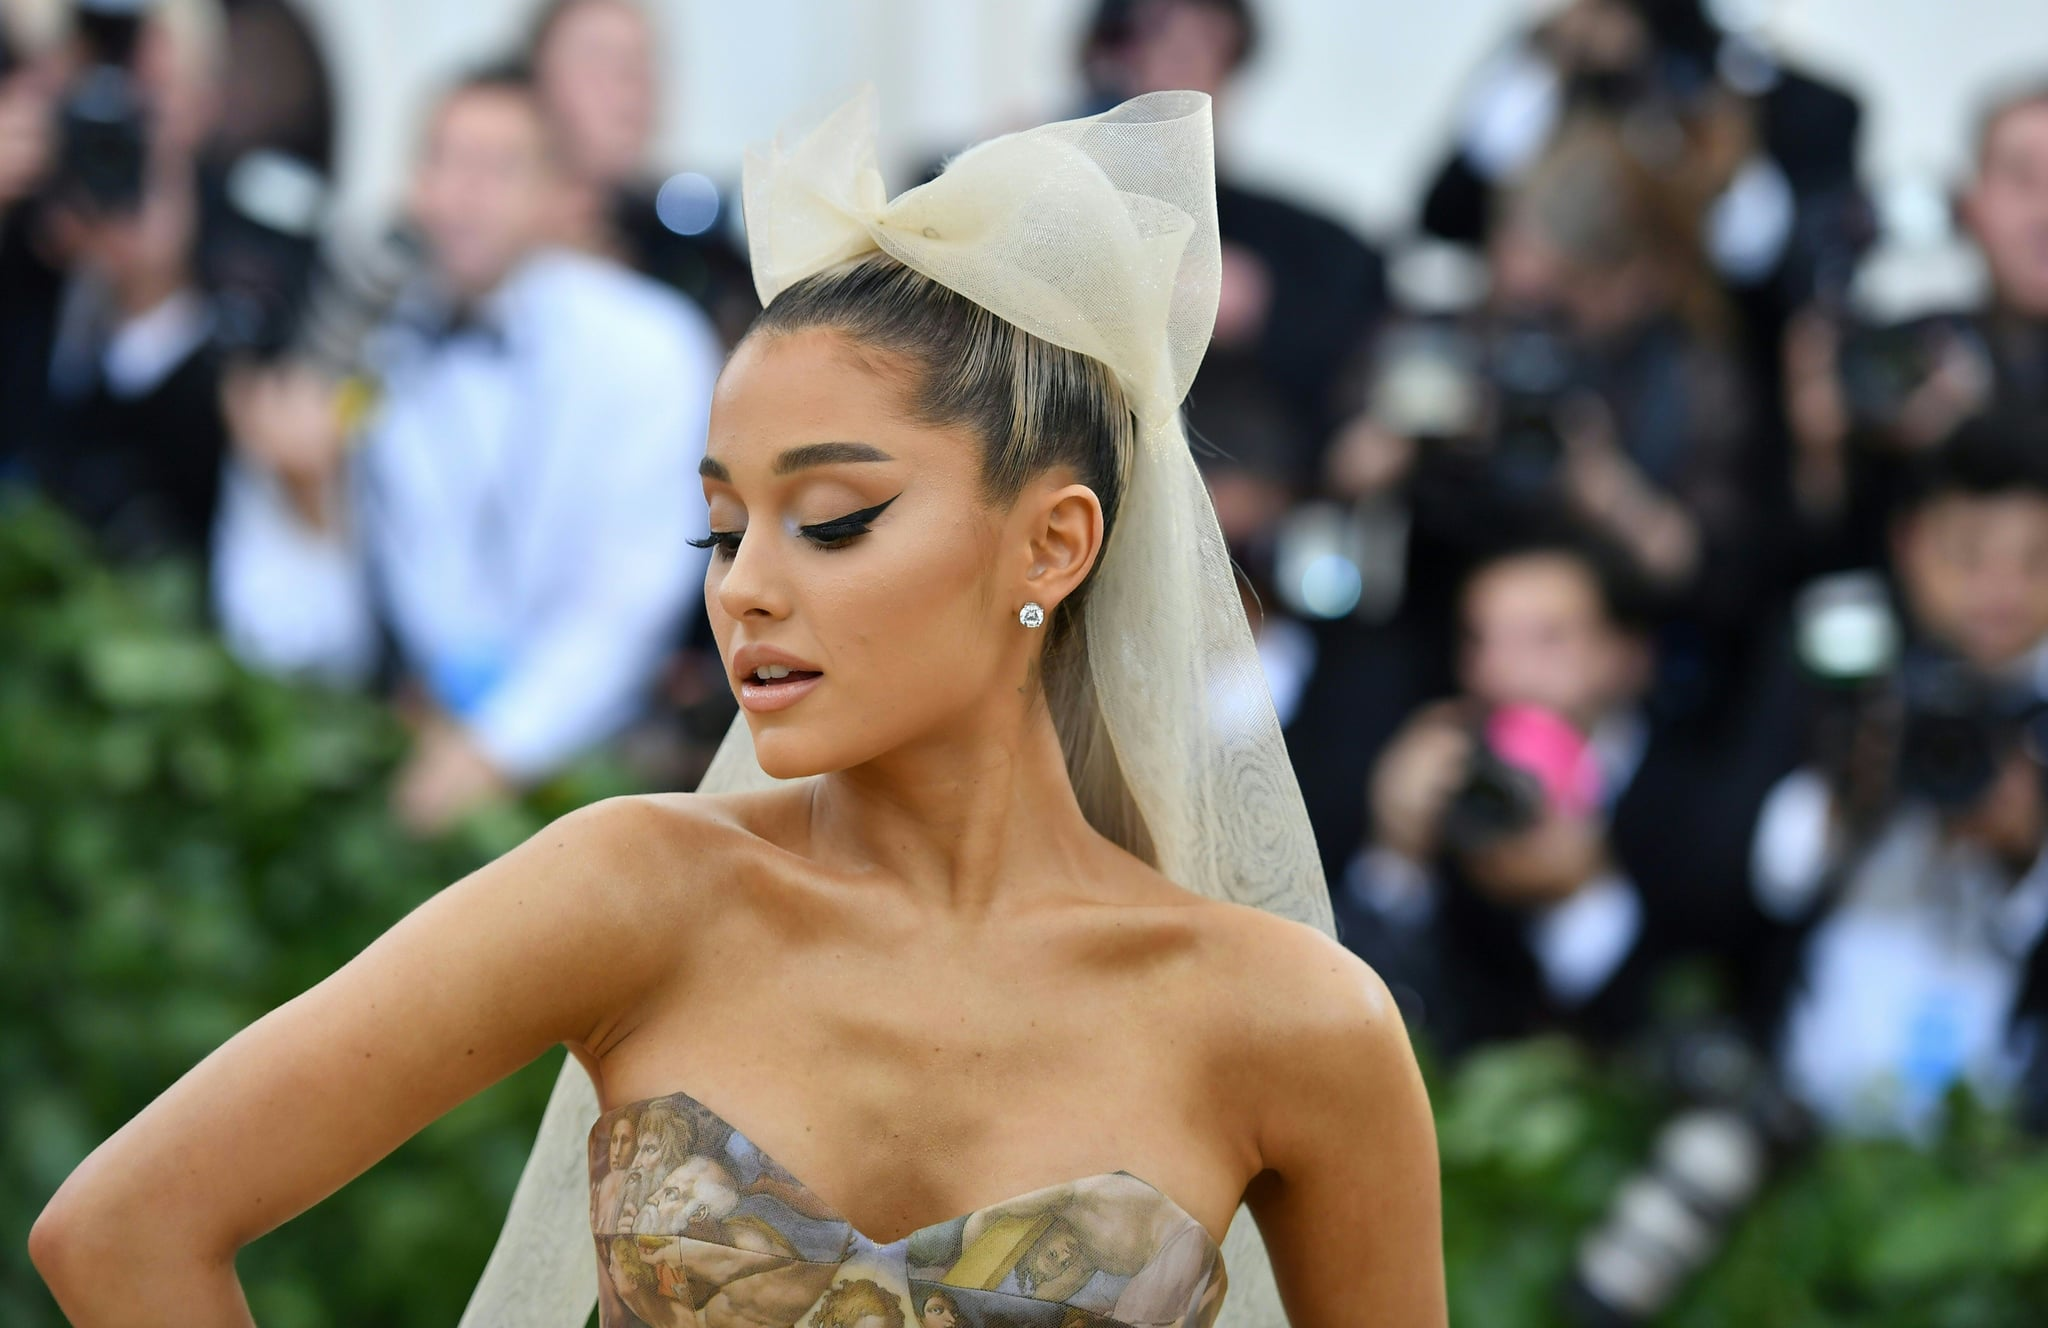 Ariana Grande arrives for the 2018 Met Gala on May 7, 2018, at the Metropolitan Museum of Art in New York. - The Gala raises money for the Metropolitan Museum of Arts Costume Institute. The Gala's 2018 theme is Heavenly Bodies: Fashion and the Catholic Imagination. (Photo by Angela WEISS / AFP)        (Photo credit should read ANGELA WEISS/AFP/Getty Images)